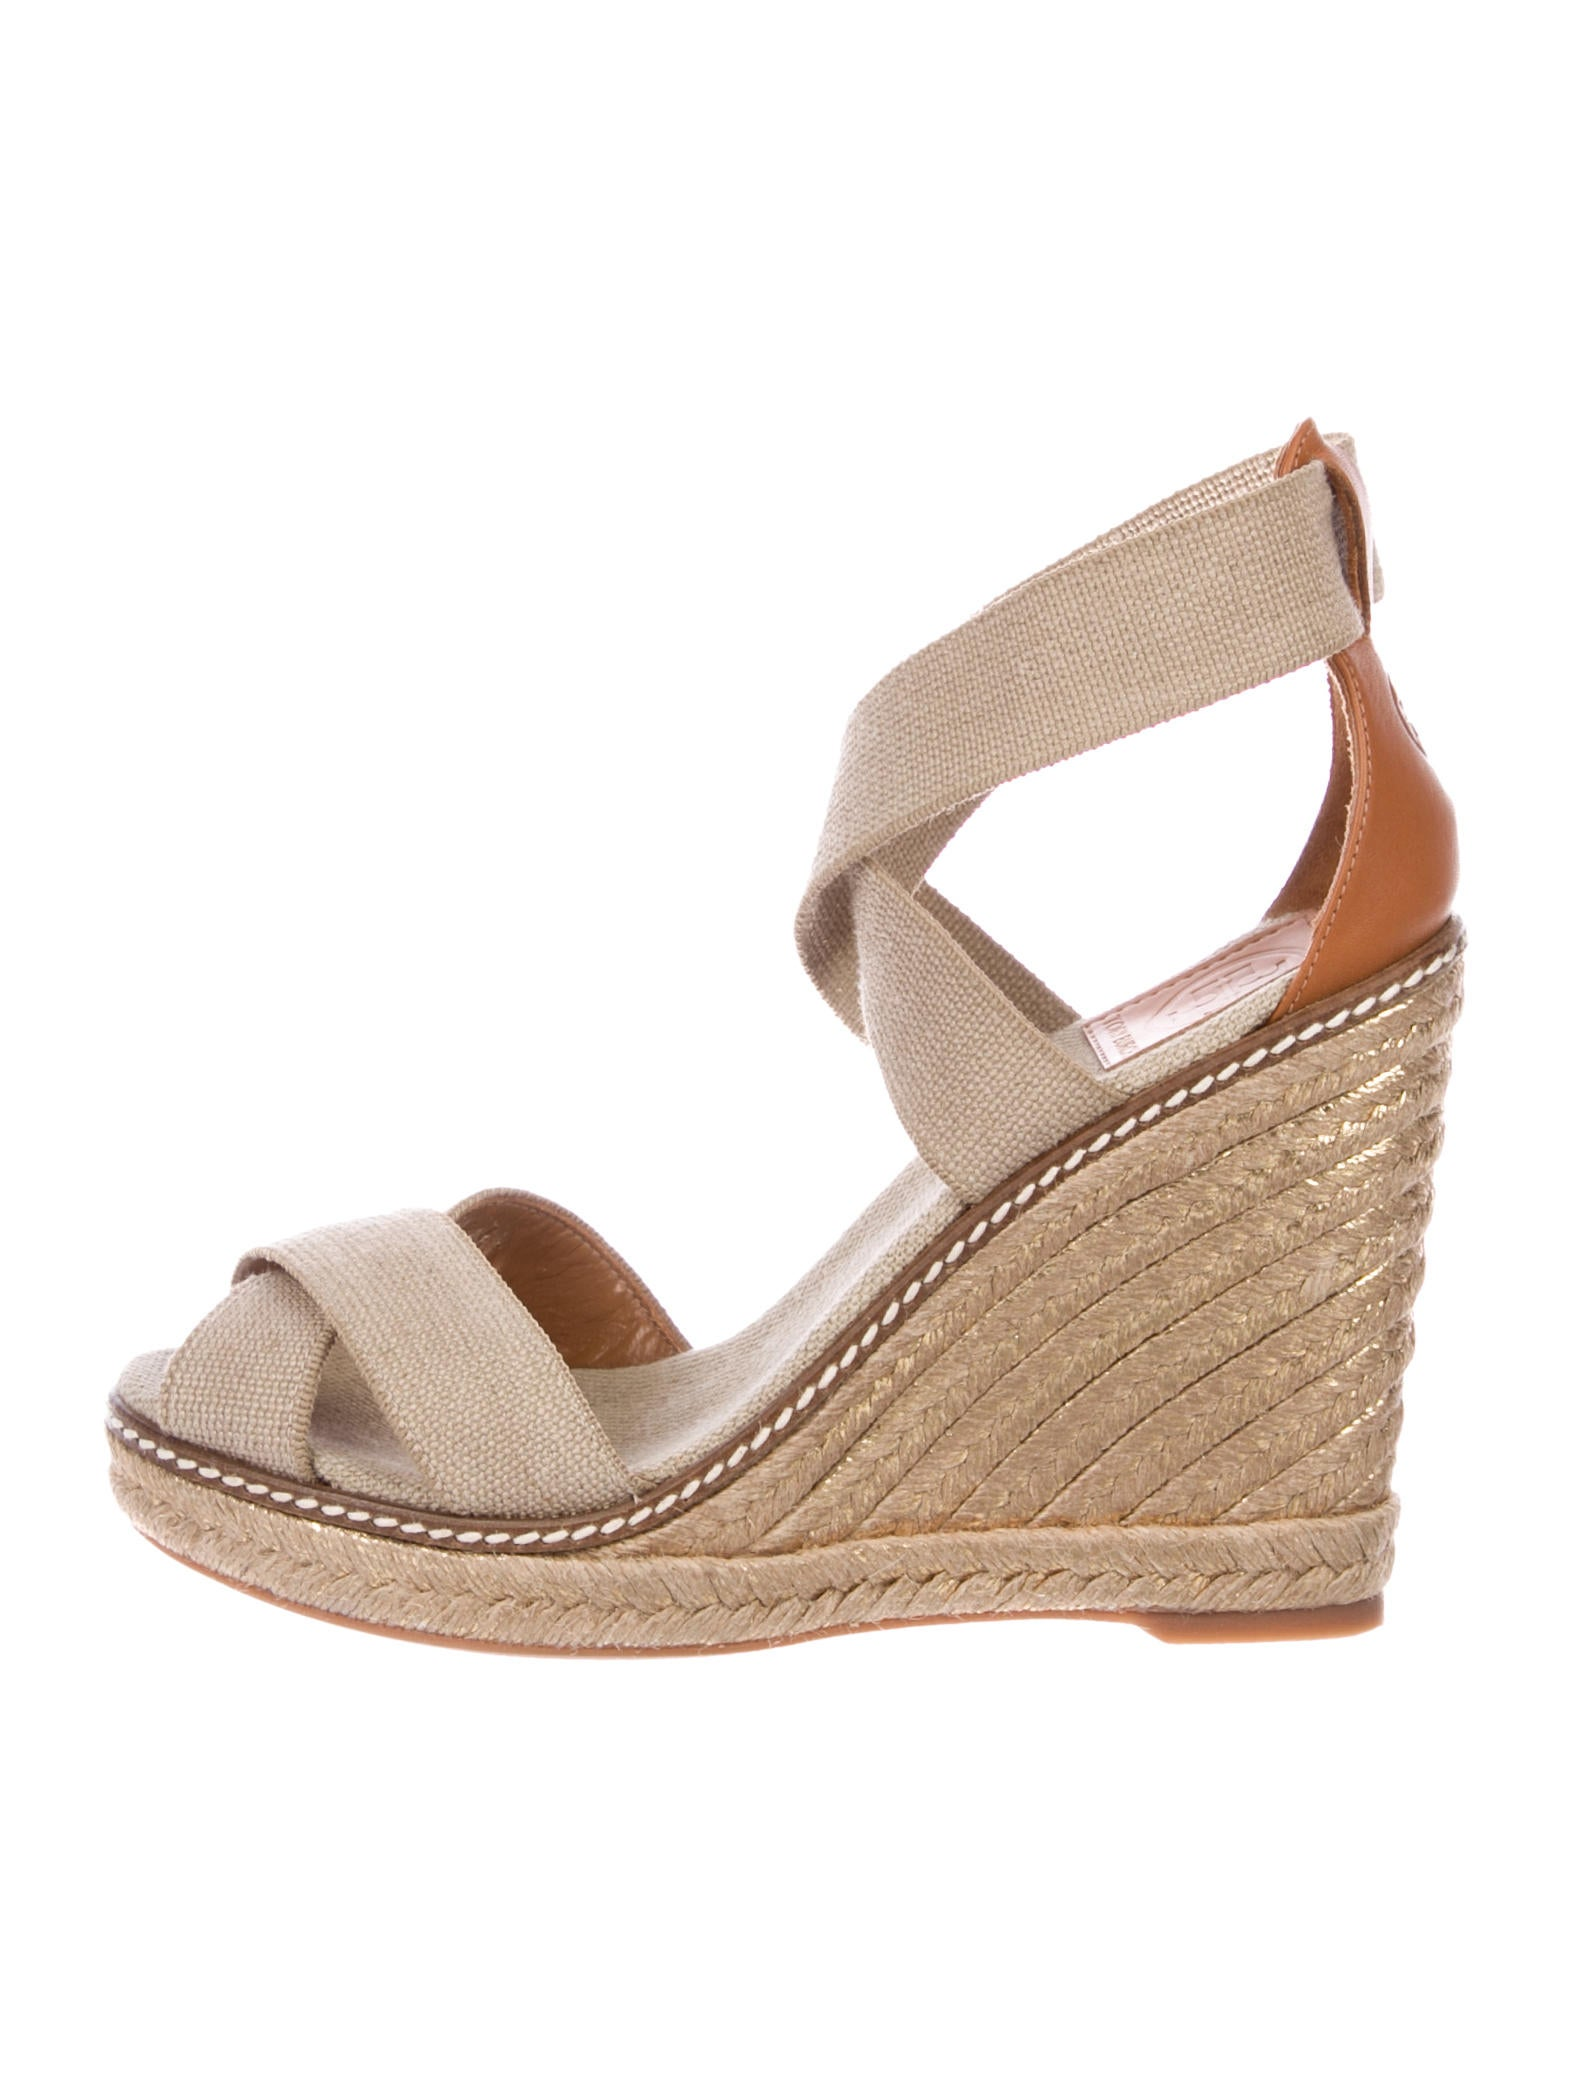 52ec7826f800b Tory Burch Ankle Strap Espadrille Wedges - Shoes - WTO145401